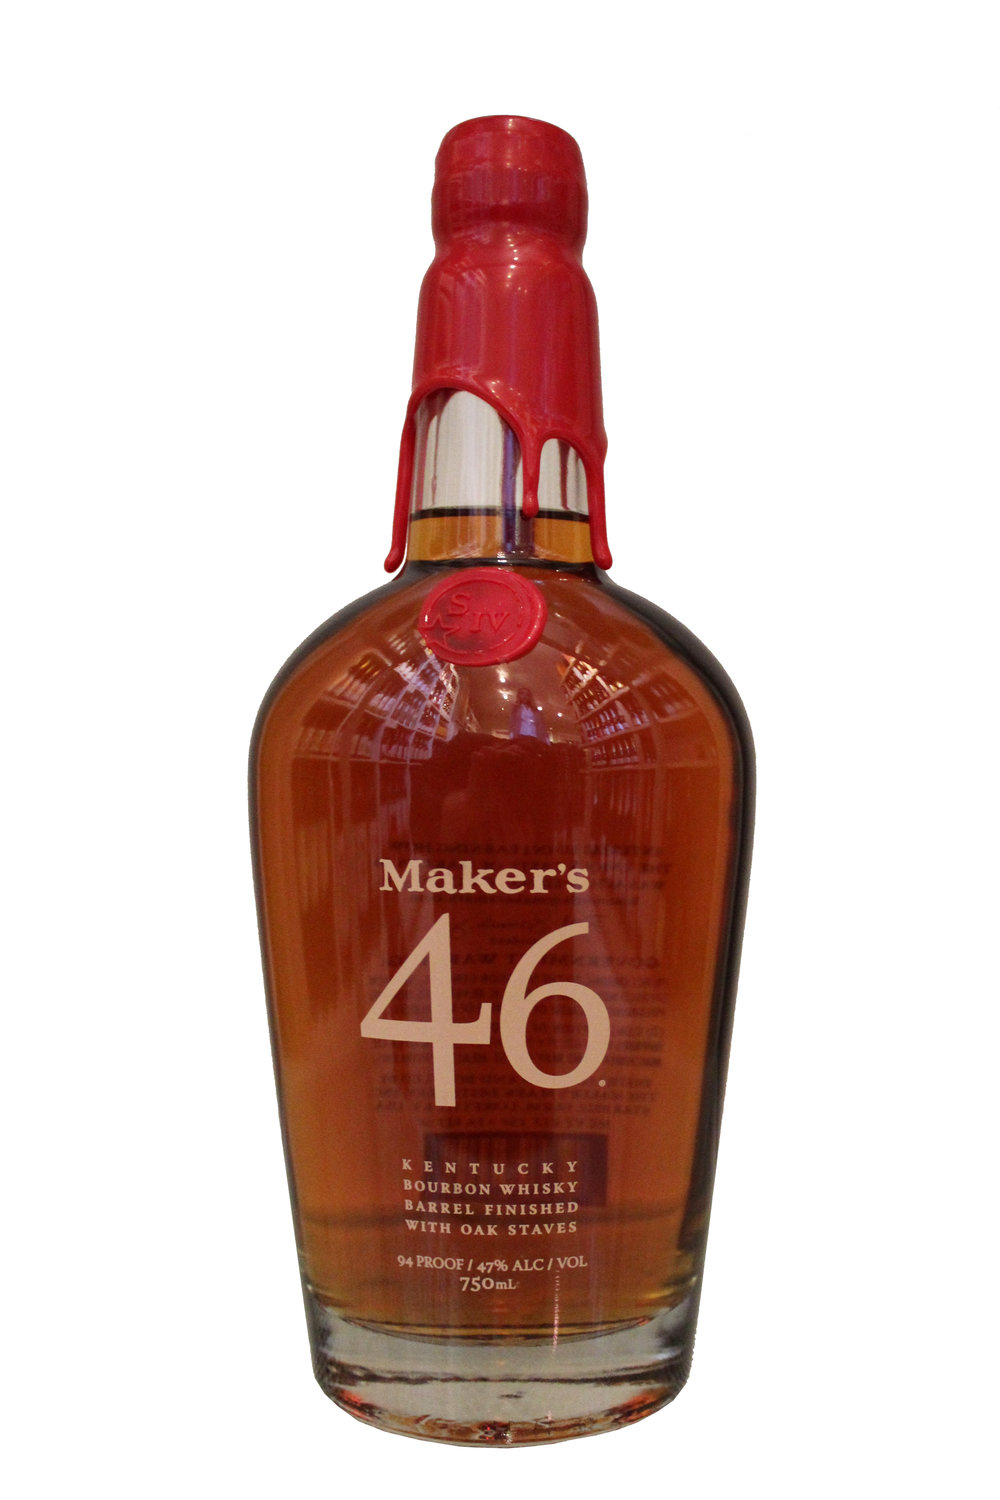 Barrel Finished Bourbon Maker's 46, Kentucky